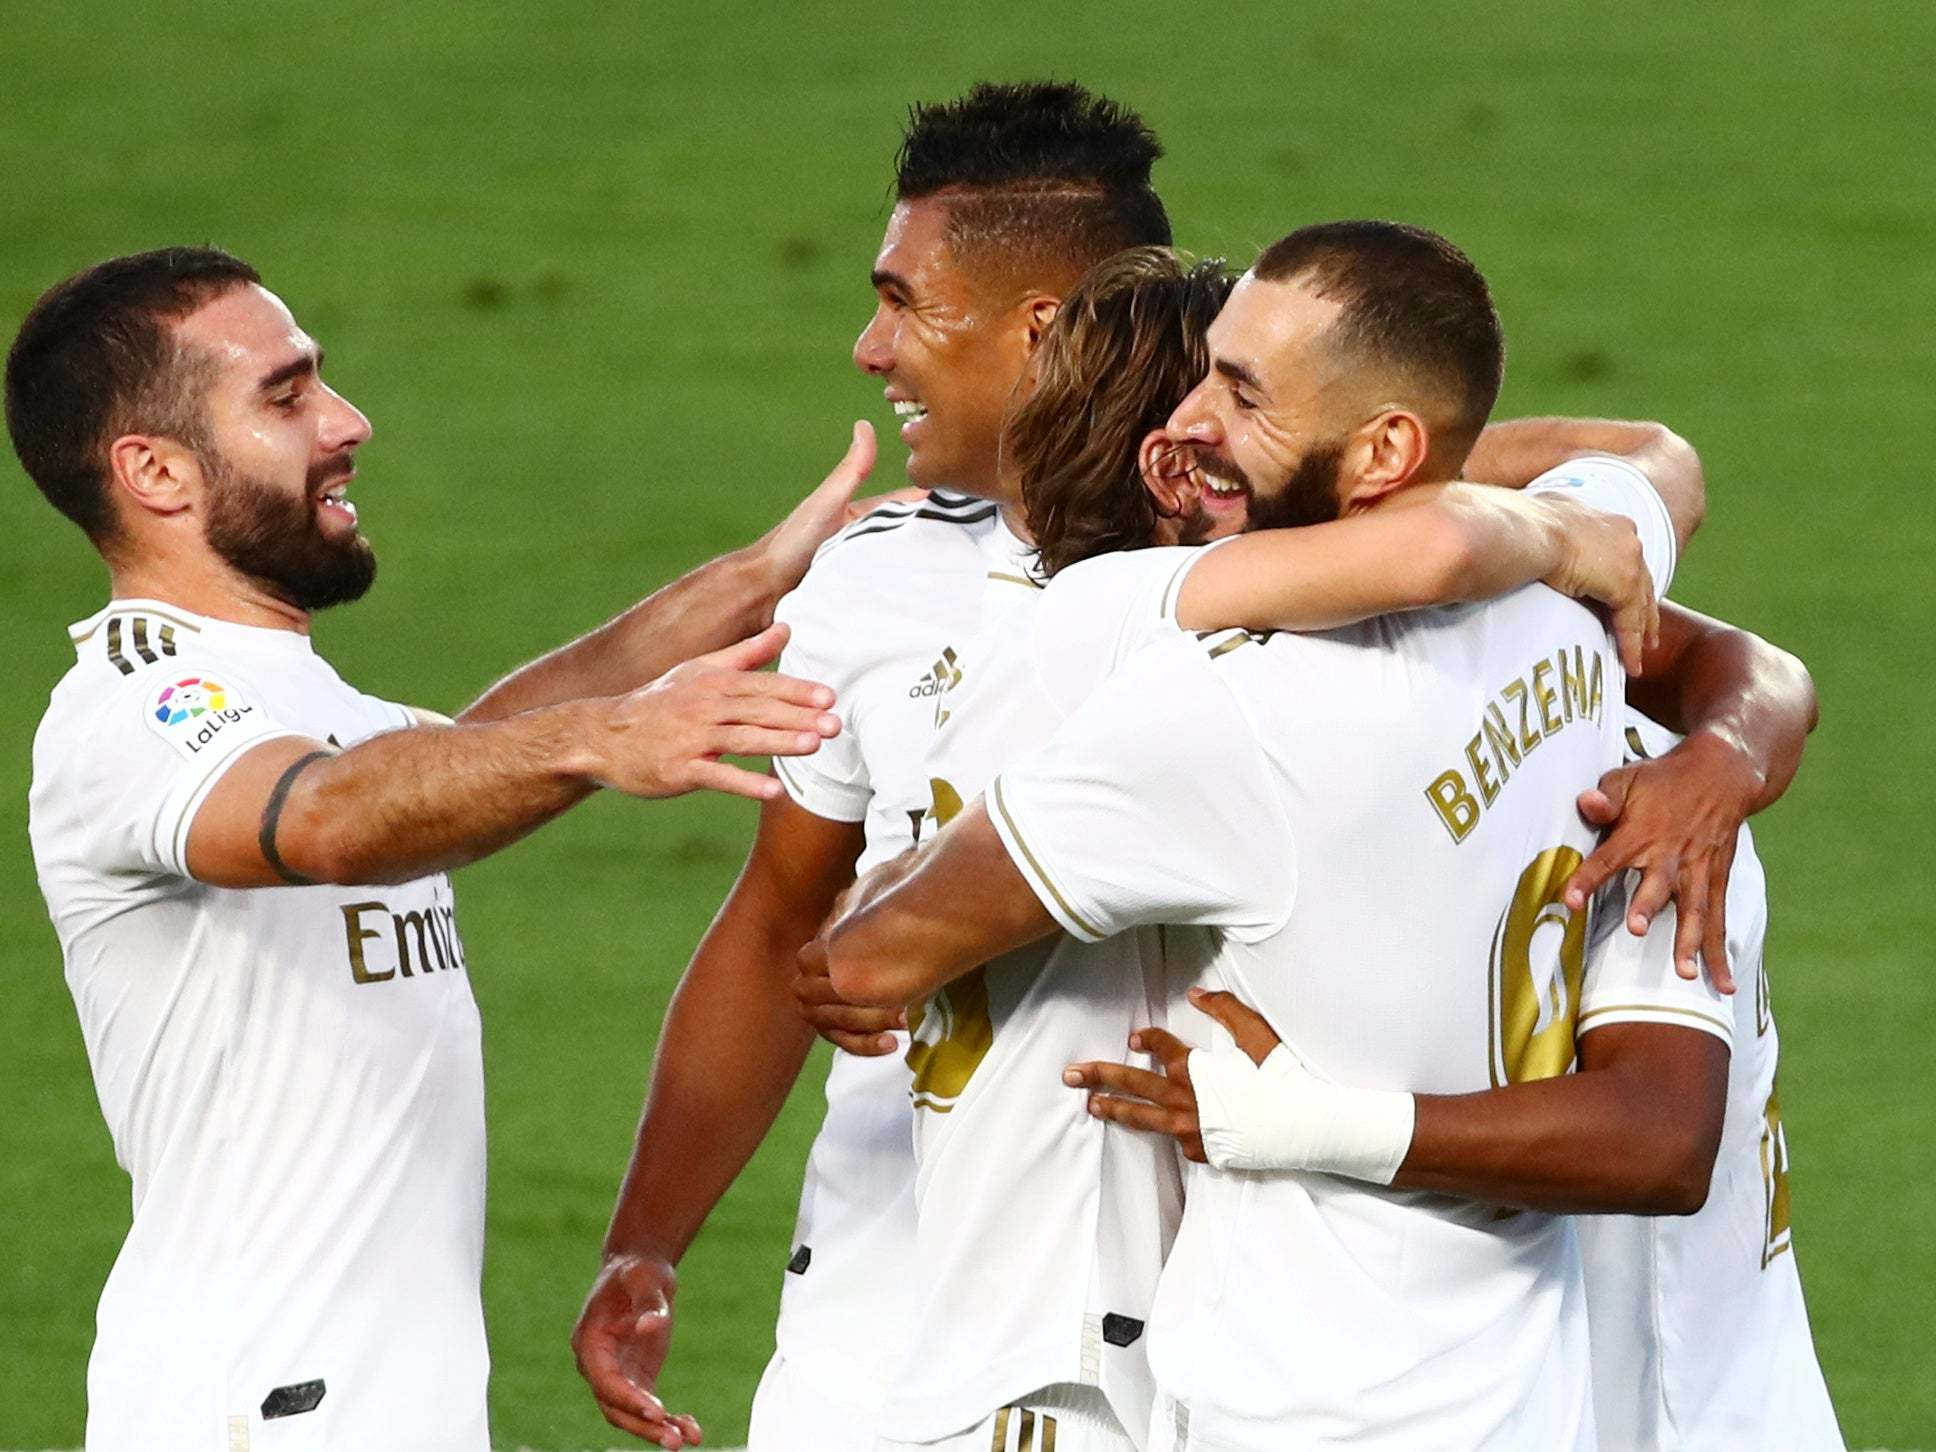 Real Madrid Clinch La Liga Title After Karim Benzema s Double Sees Off Villarreal The Independent The Independent